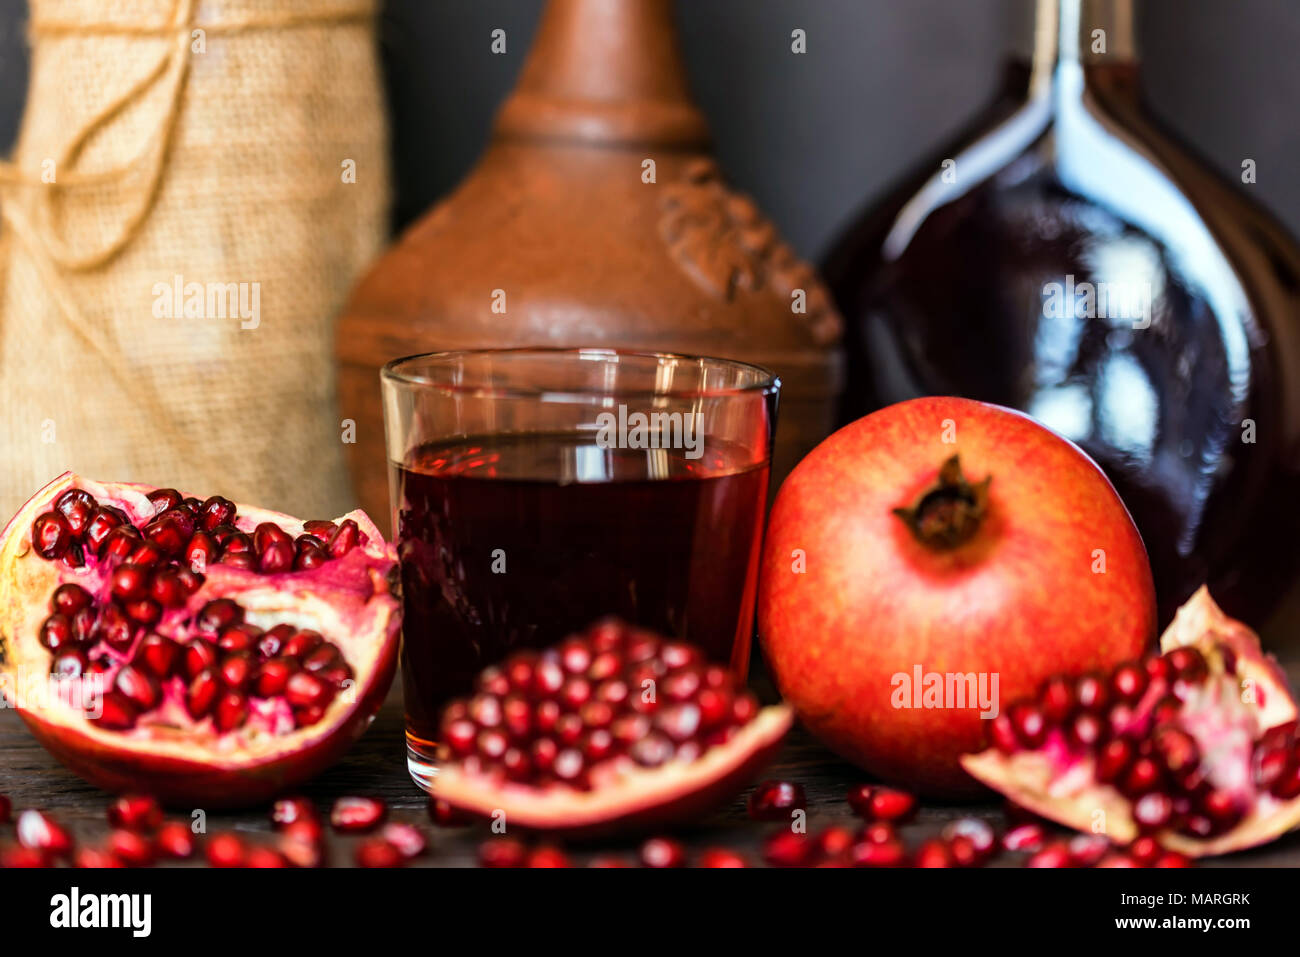 Pomegranate fruit, wine in glass and wine bottles - Stock Image